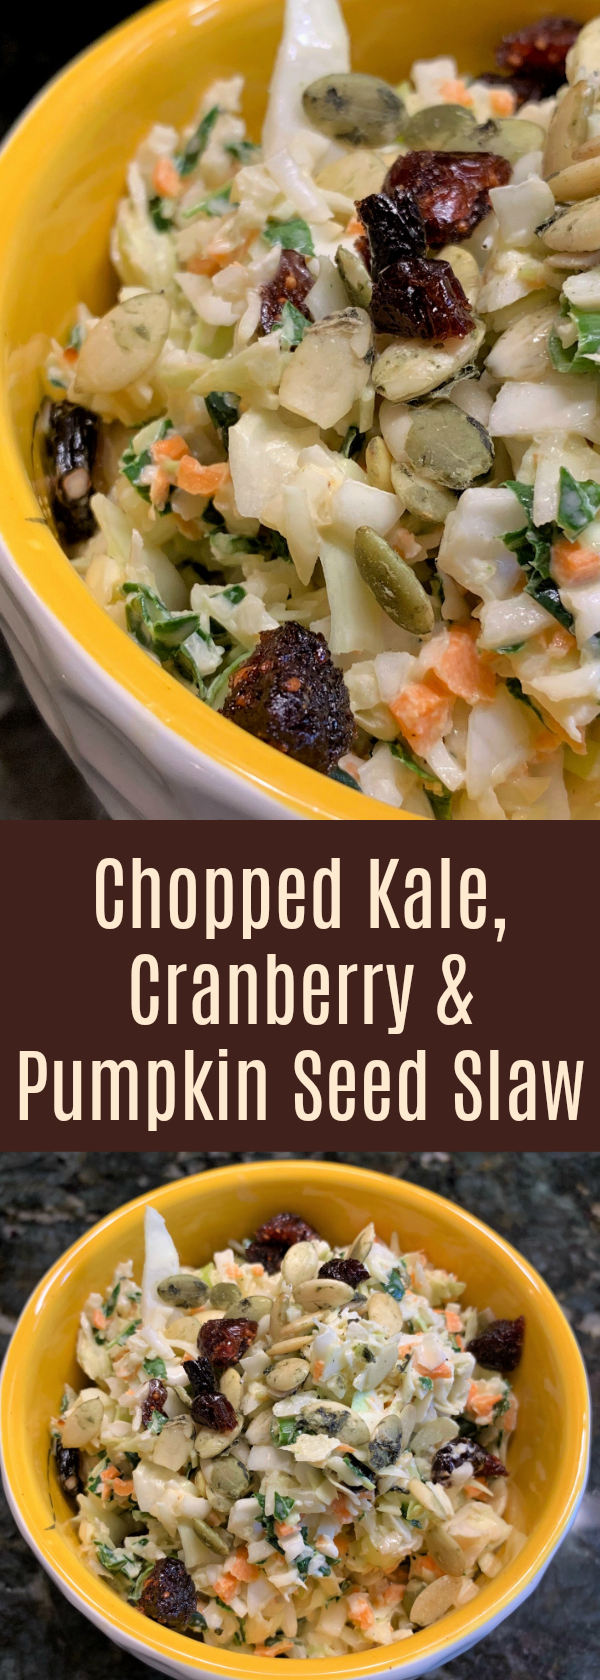 Chopped Kale, Cranberry and Pumpkin Seed Slaw, Gluten and Dairy Free